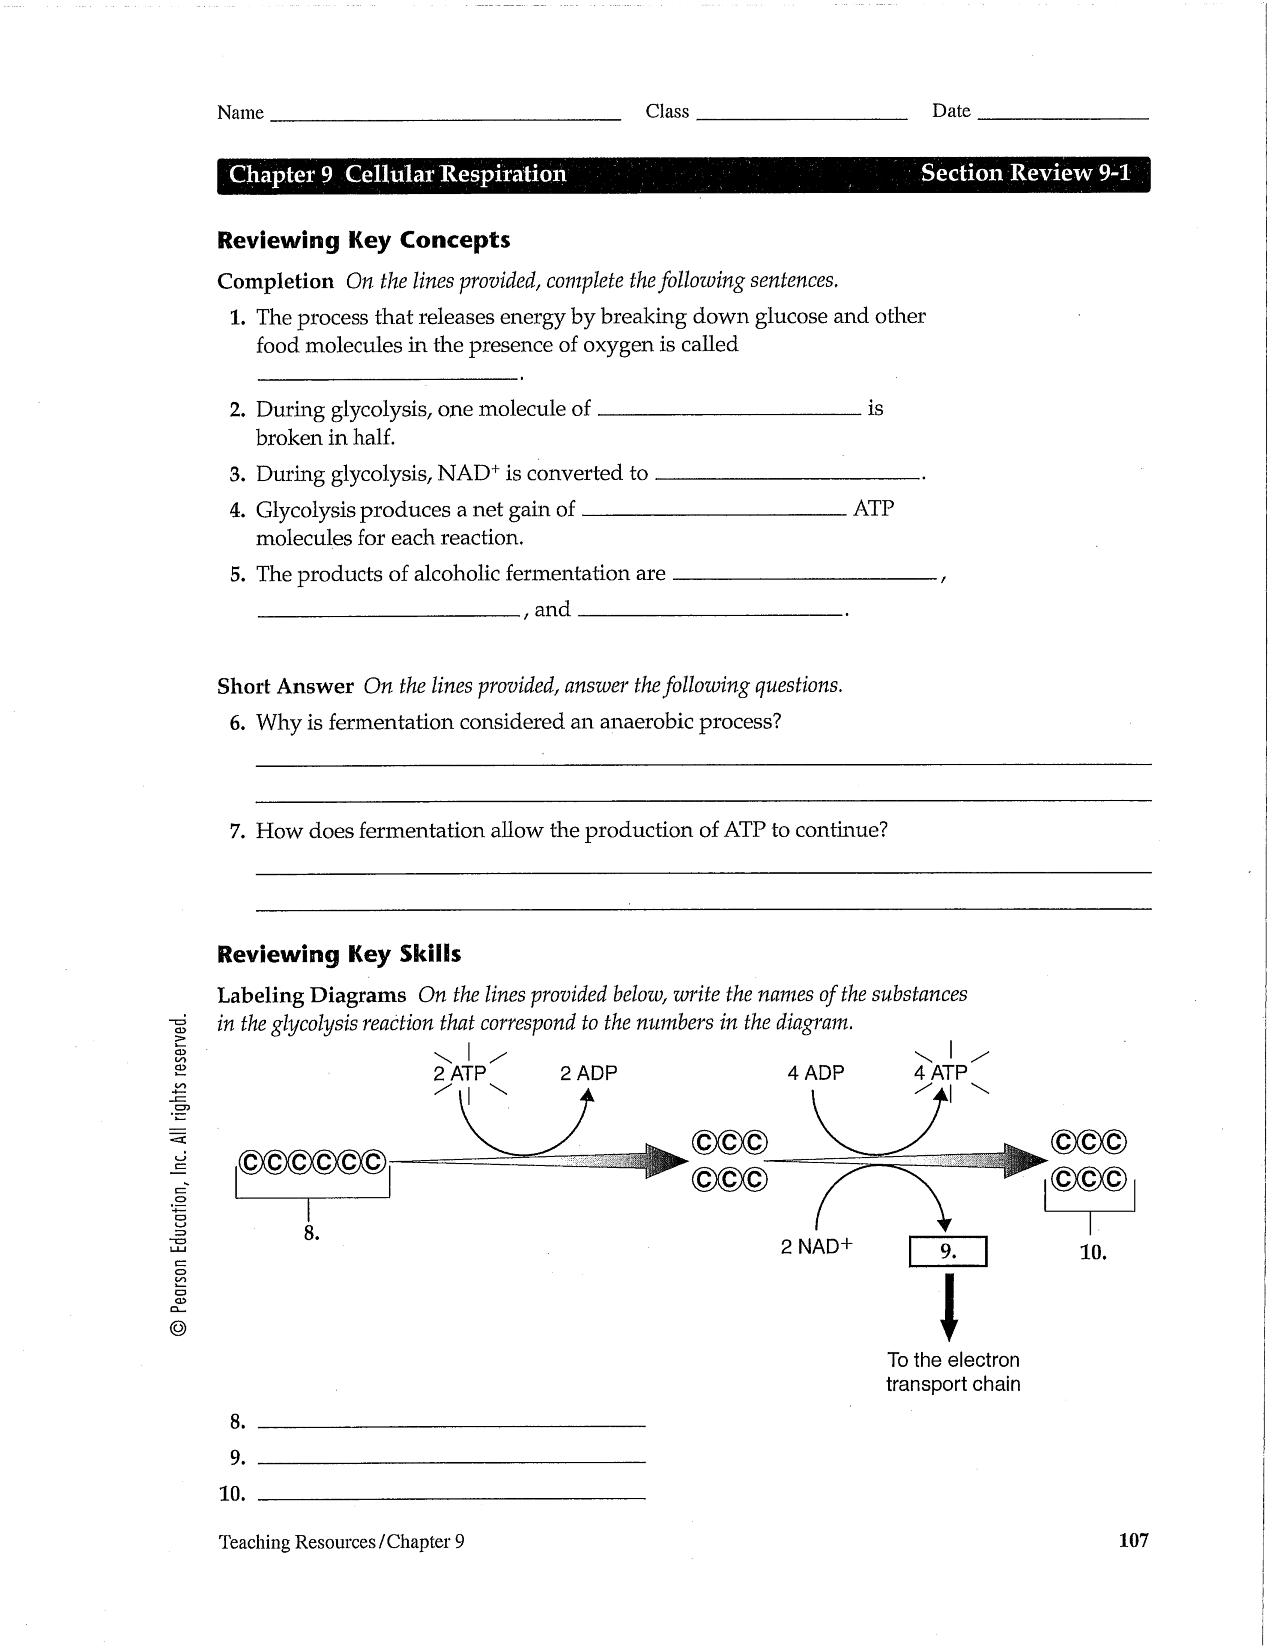 Mitosis And Cancer Worksheet Cell Division And The Cell